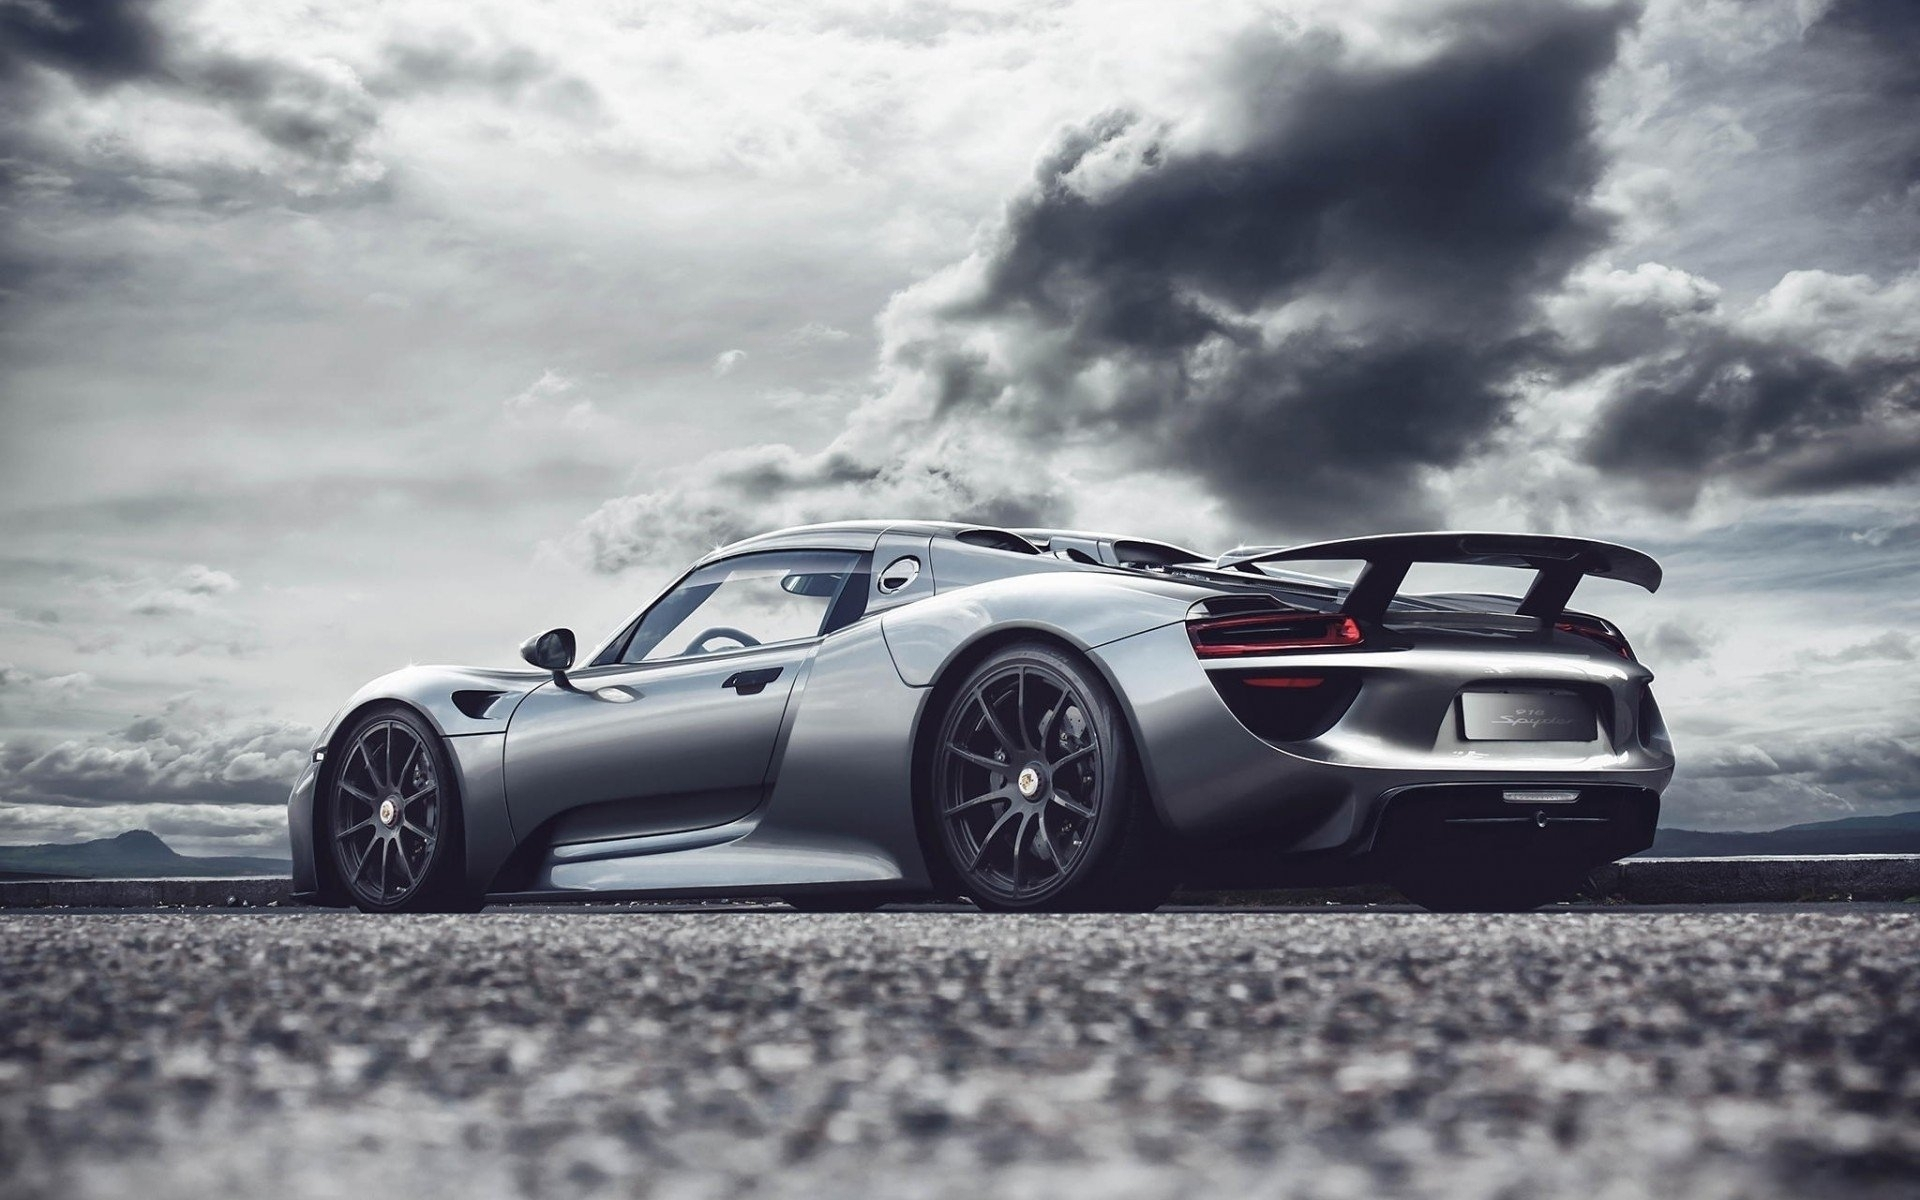 10 Latest Porsche 918 Wallpaper 1920X1080 FULL HD 1080p For PC Desktop